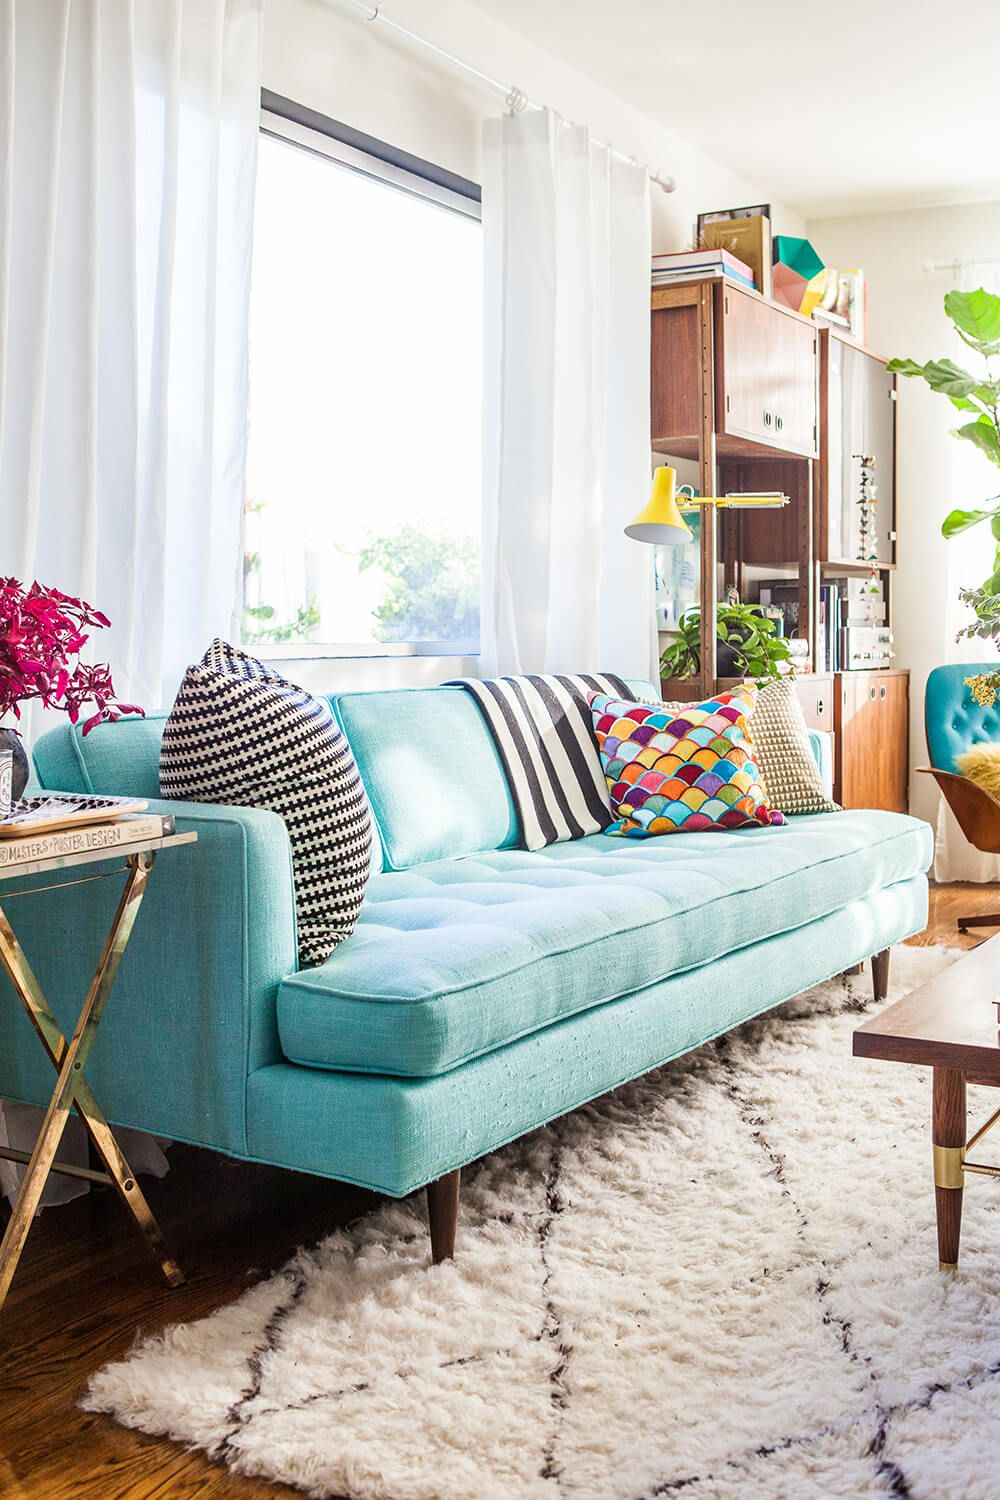 Designs For Sofas For The Living Room: 84 Affordable Amazing Sofas Under $1000 (Emily Henderson